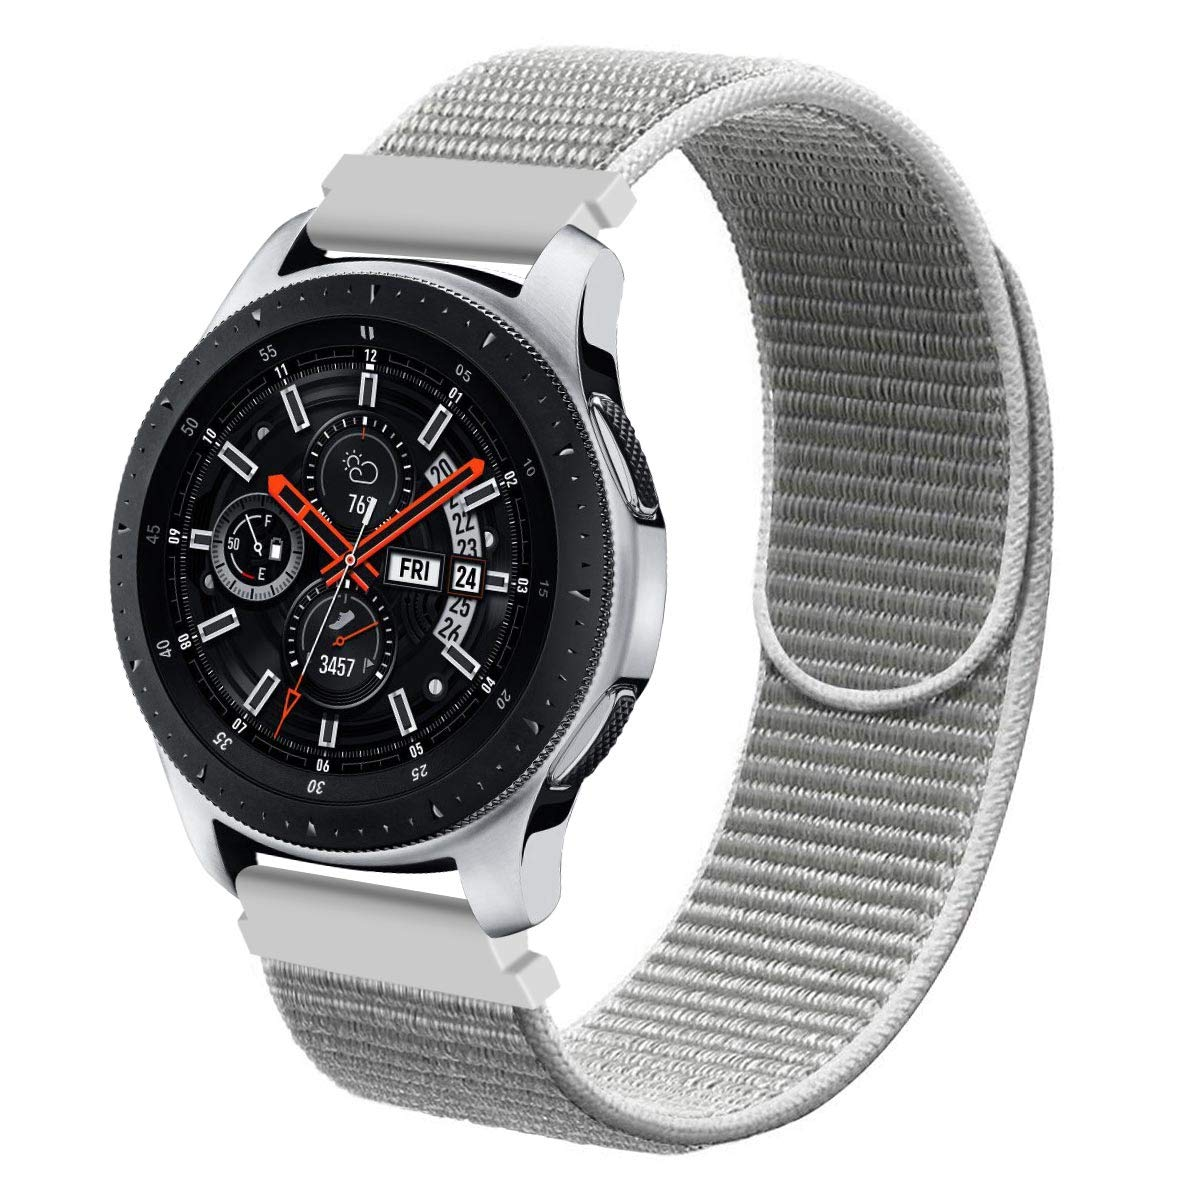 Galaxy Watch 46mm Bands, Gear S3 Bands, Wingle 22mm Universal Replacement Strap w/Quick Release Pin Compatible for TicWatch Pro/Huawei Watch GT ...